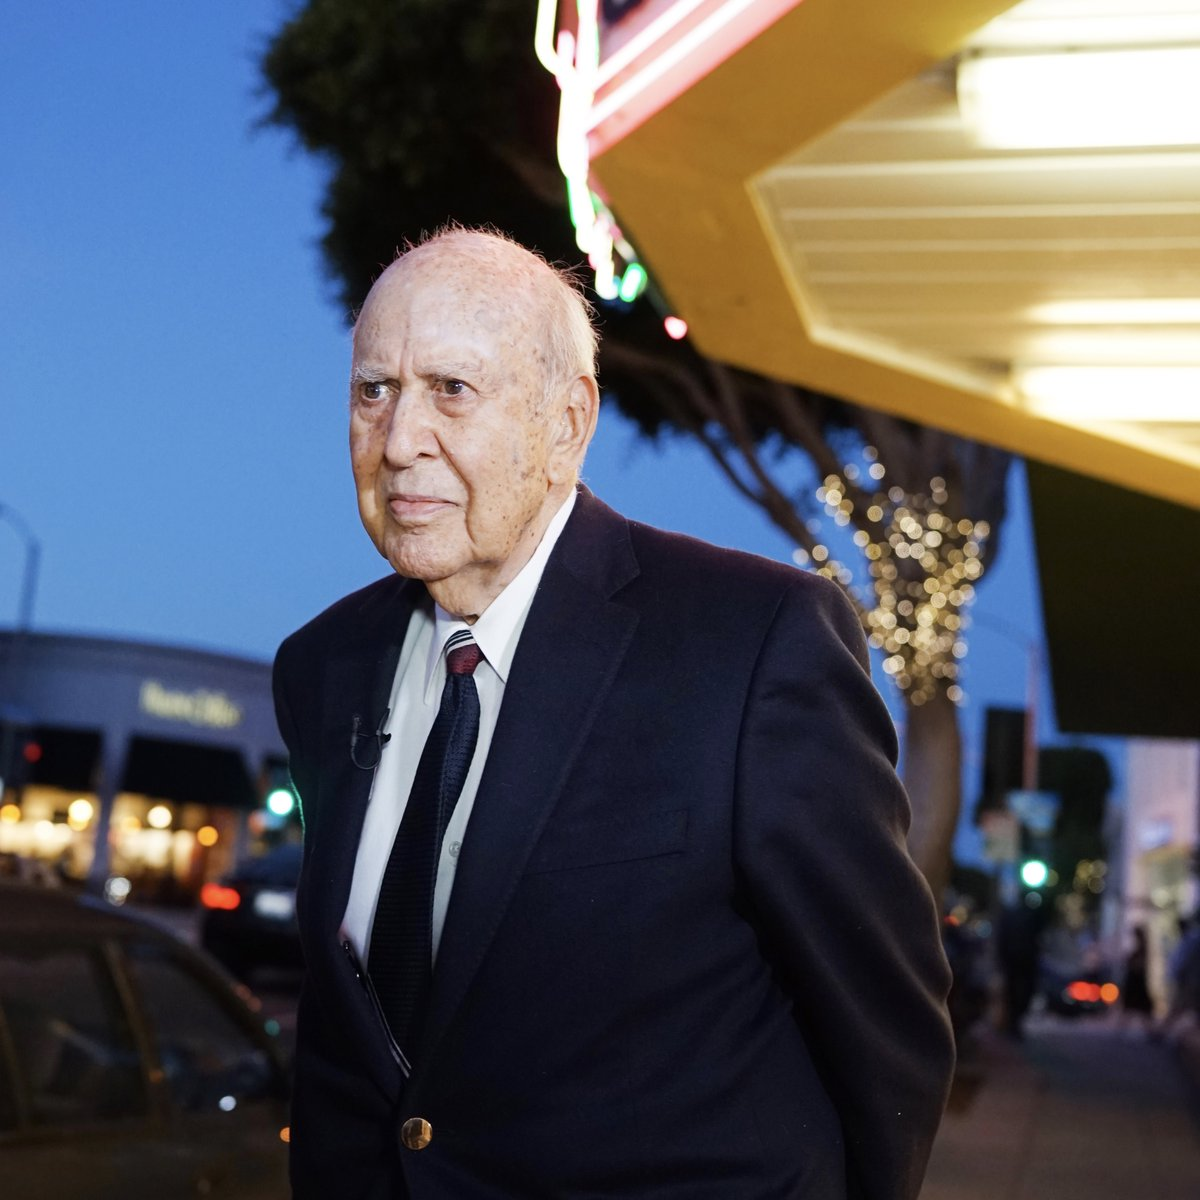 We are deeply saddened by the loss of Carl Reiner, whose prolific seven-decade career helped define comedy as we know it.